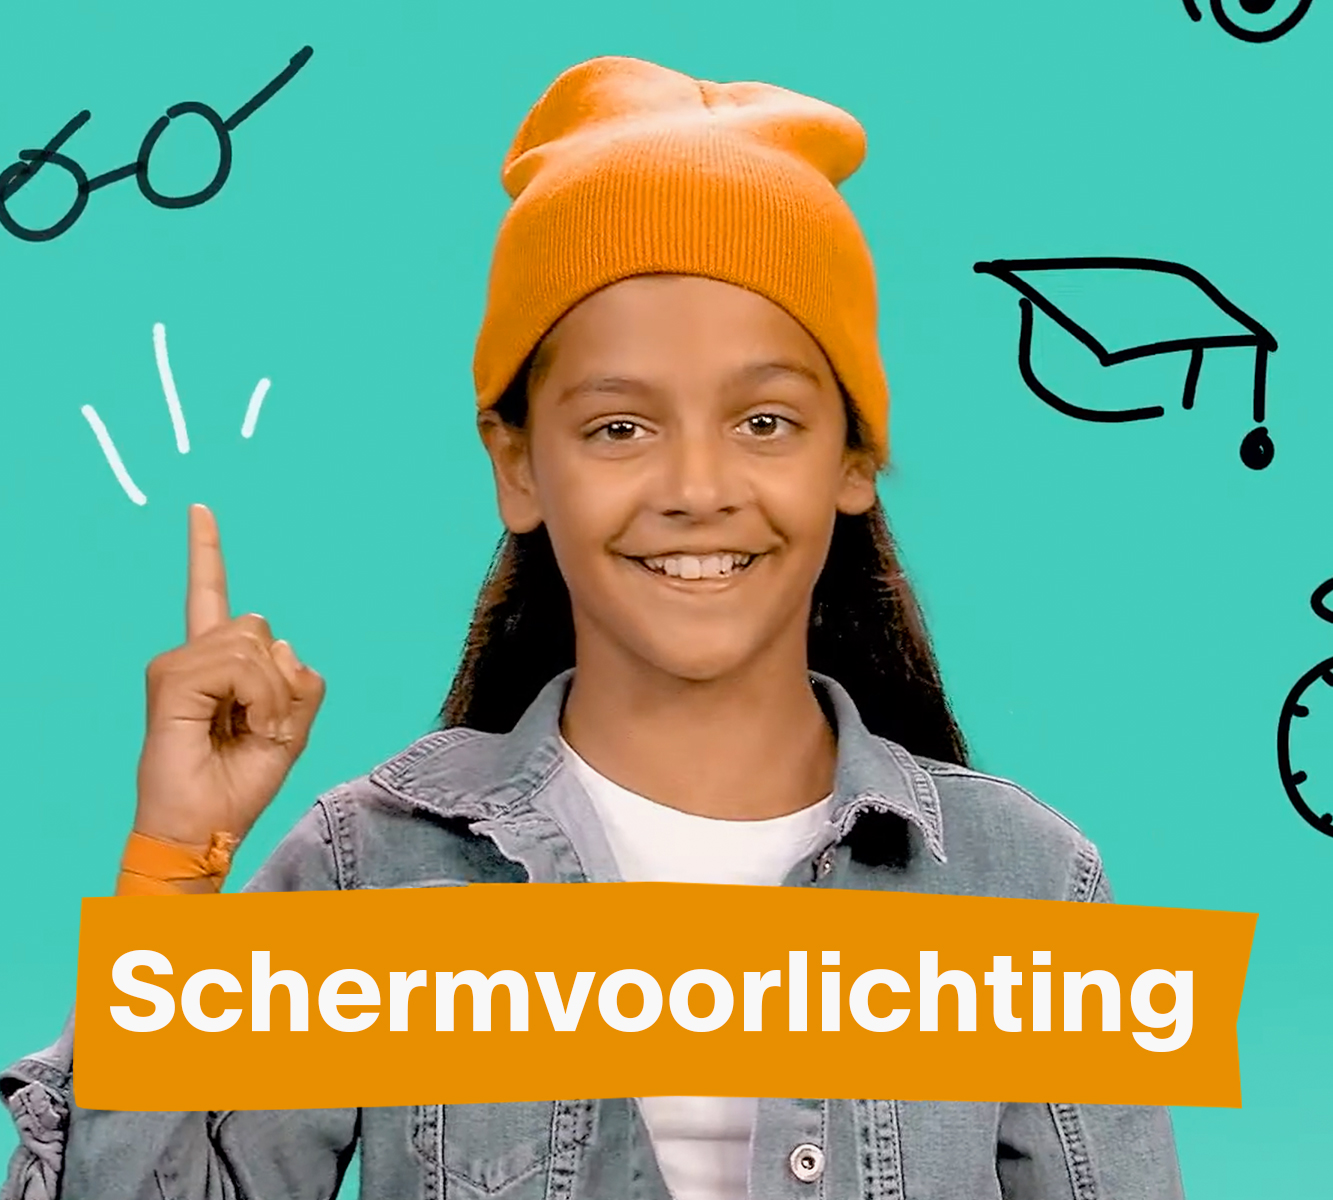 Voorlichtingscampagne social media campagne video